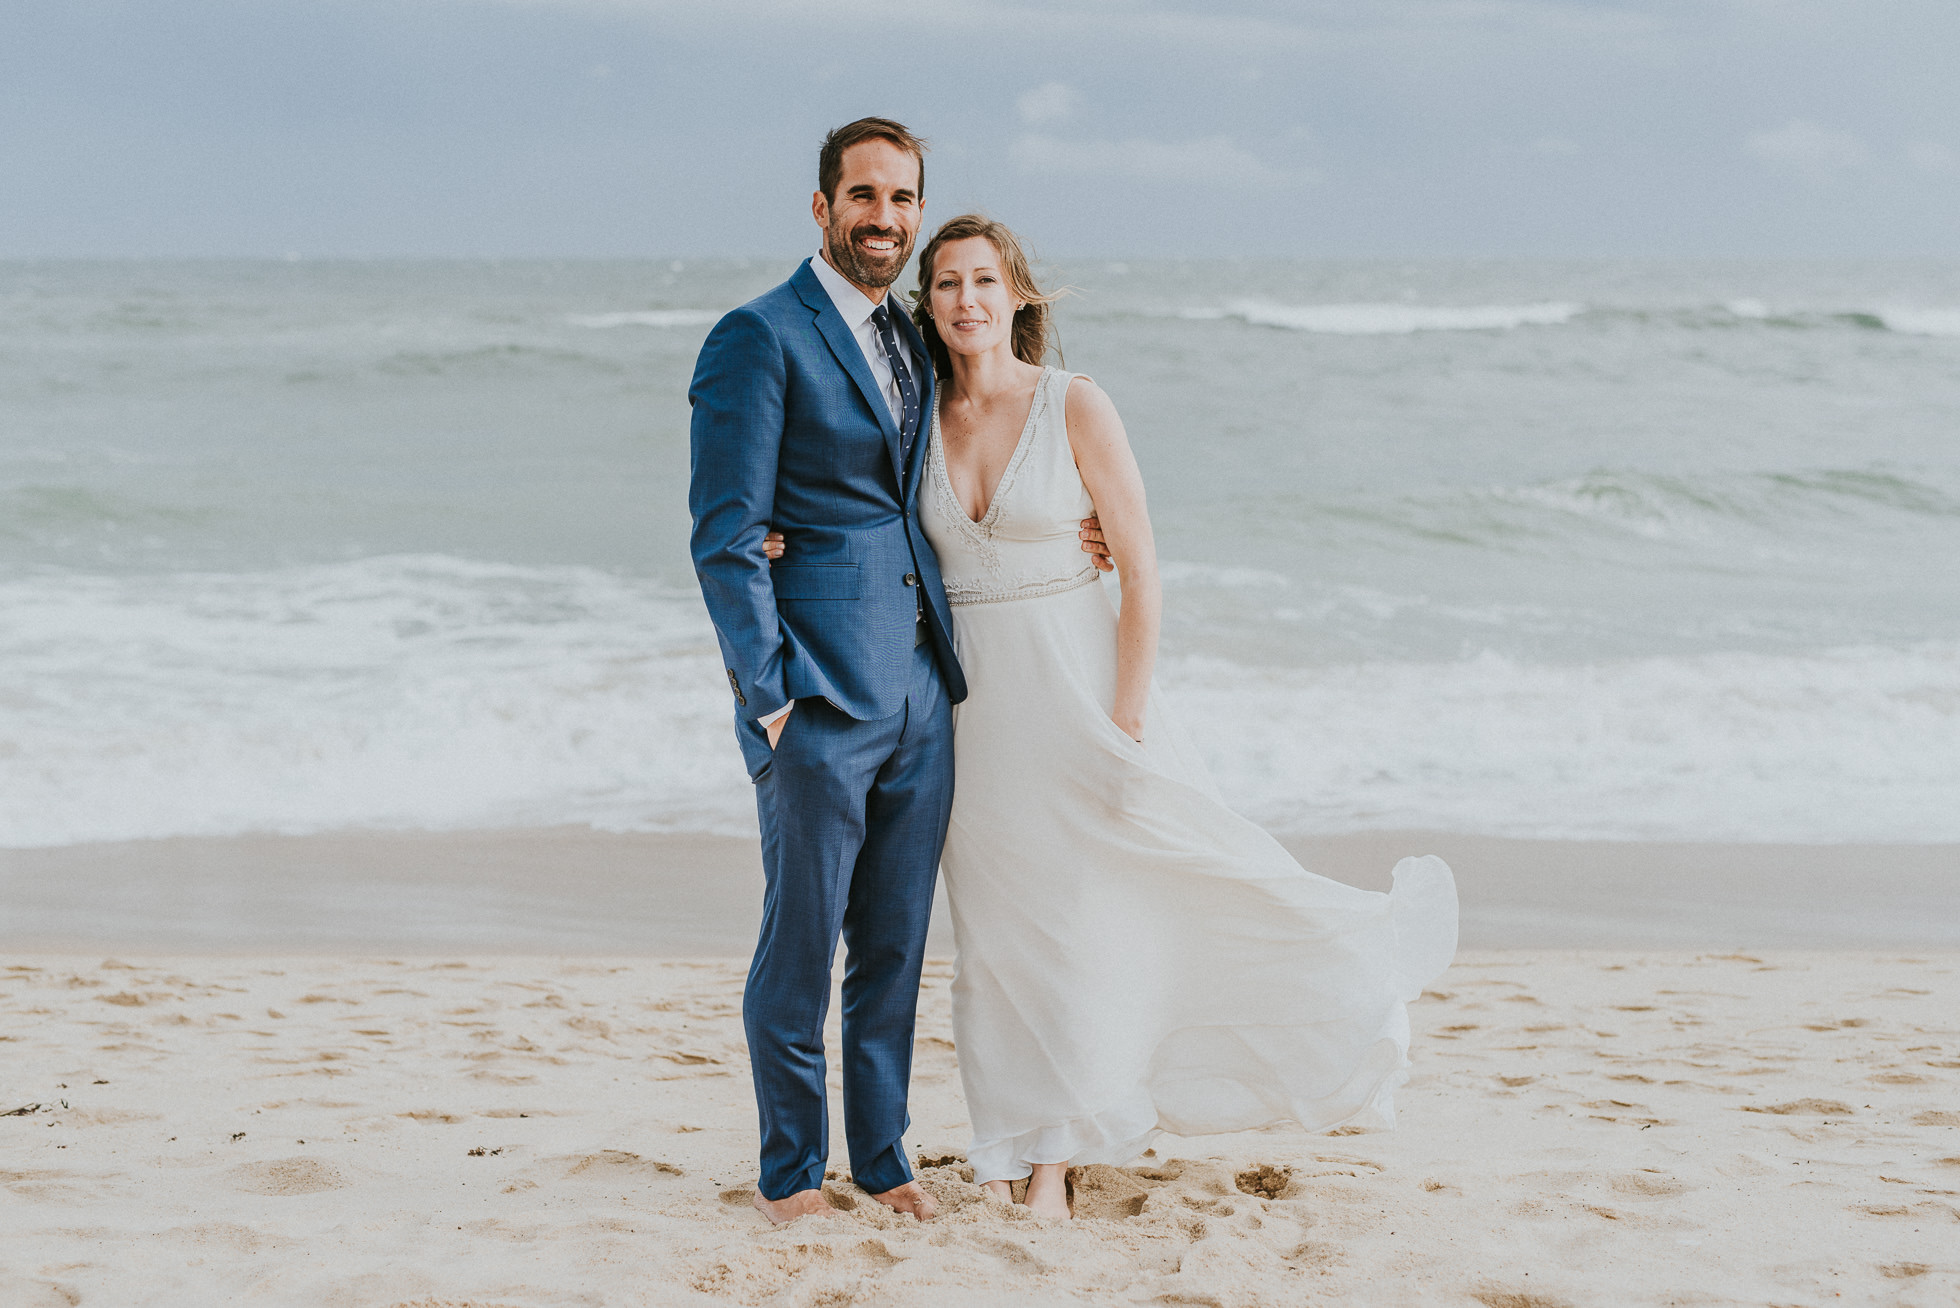 smiling bride and groom at beach Montauk wedding photographed by Traverse the Tides